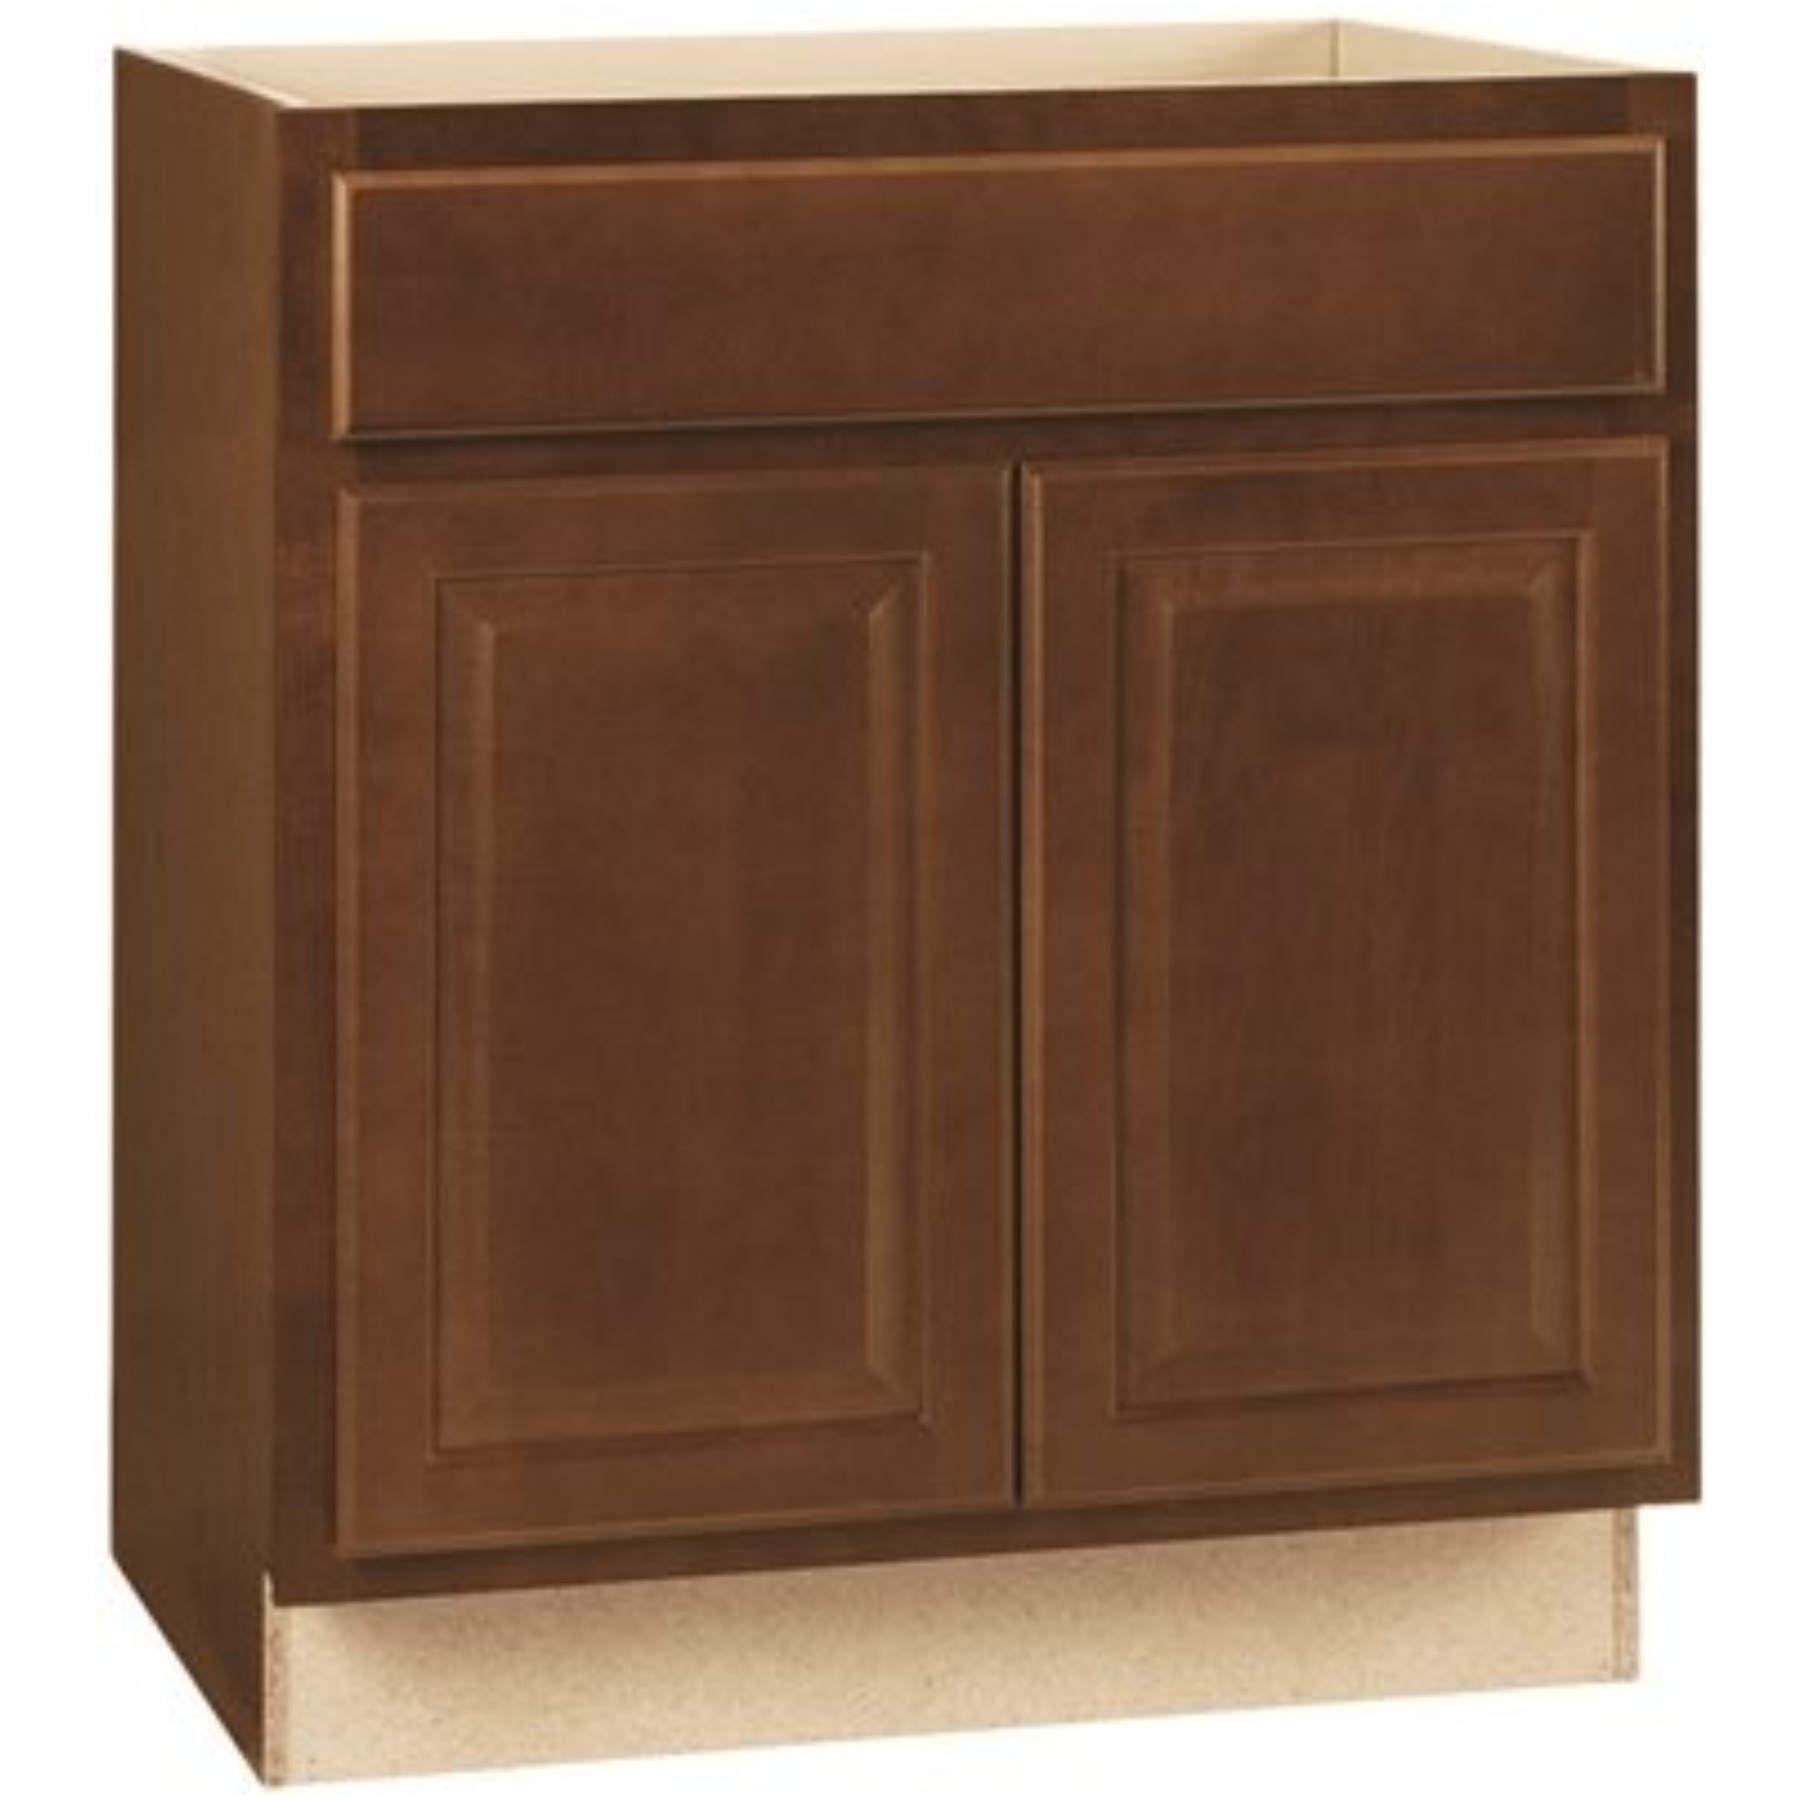 RSI HOME PRODUCTS HAMILTON SINK BASE CABINET, FULLY ASSEMBLED, RAISED PANEL, CAFE, 30X34-1/2X24 IN.